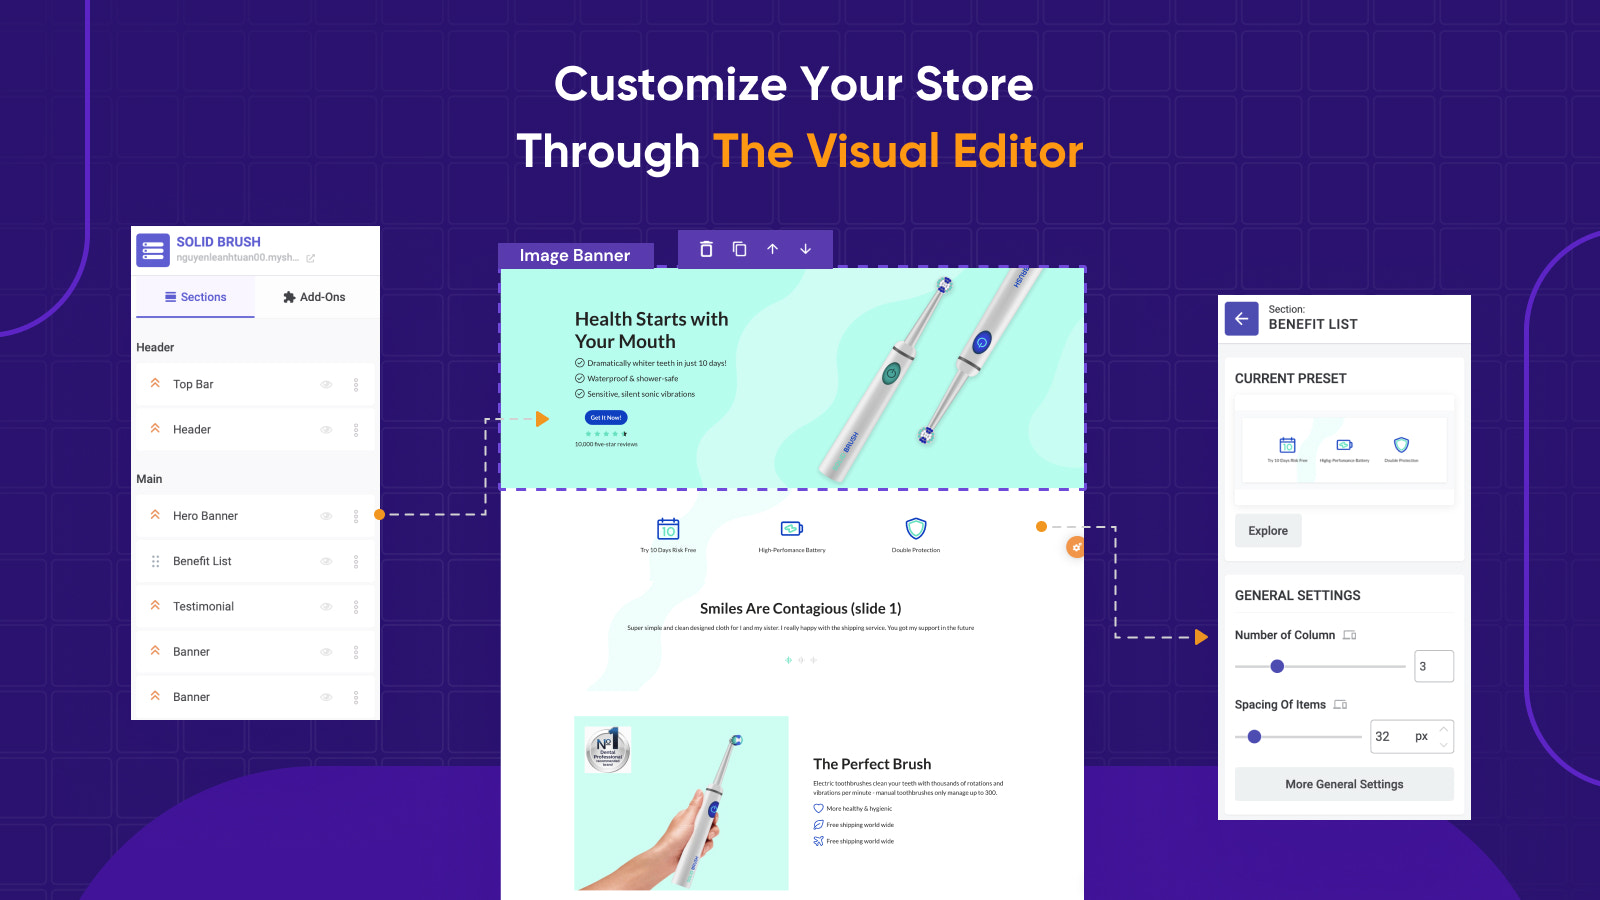 Customize Your Store Through The Visual Editor